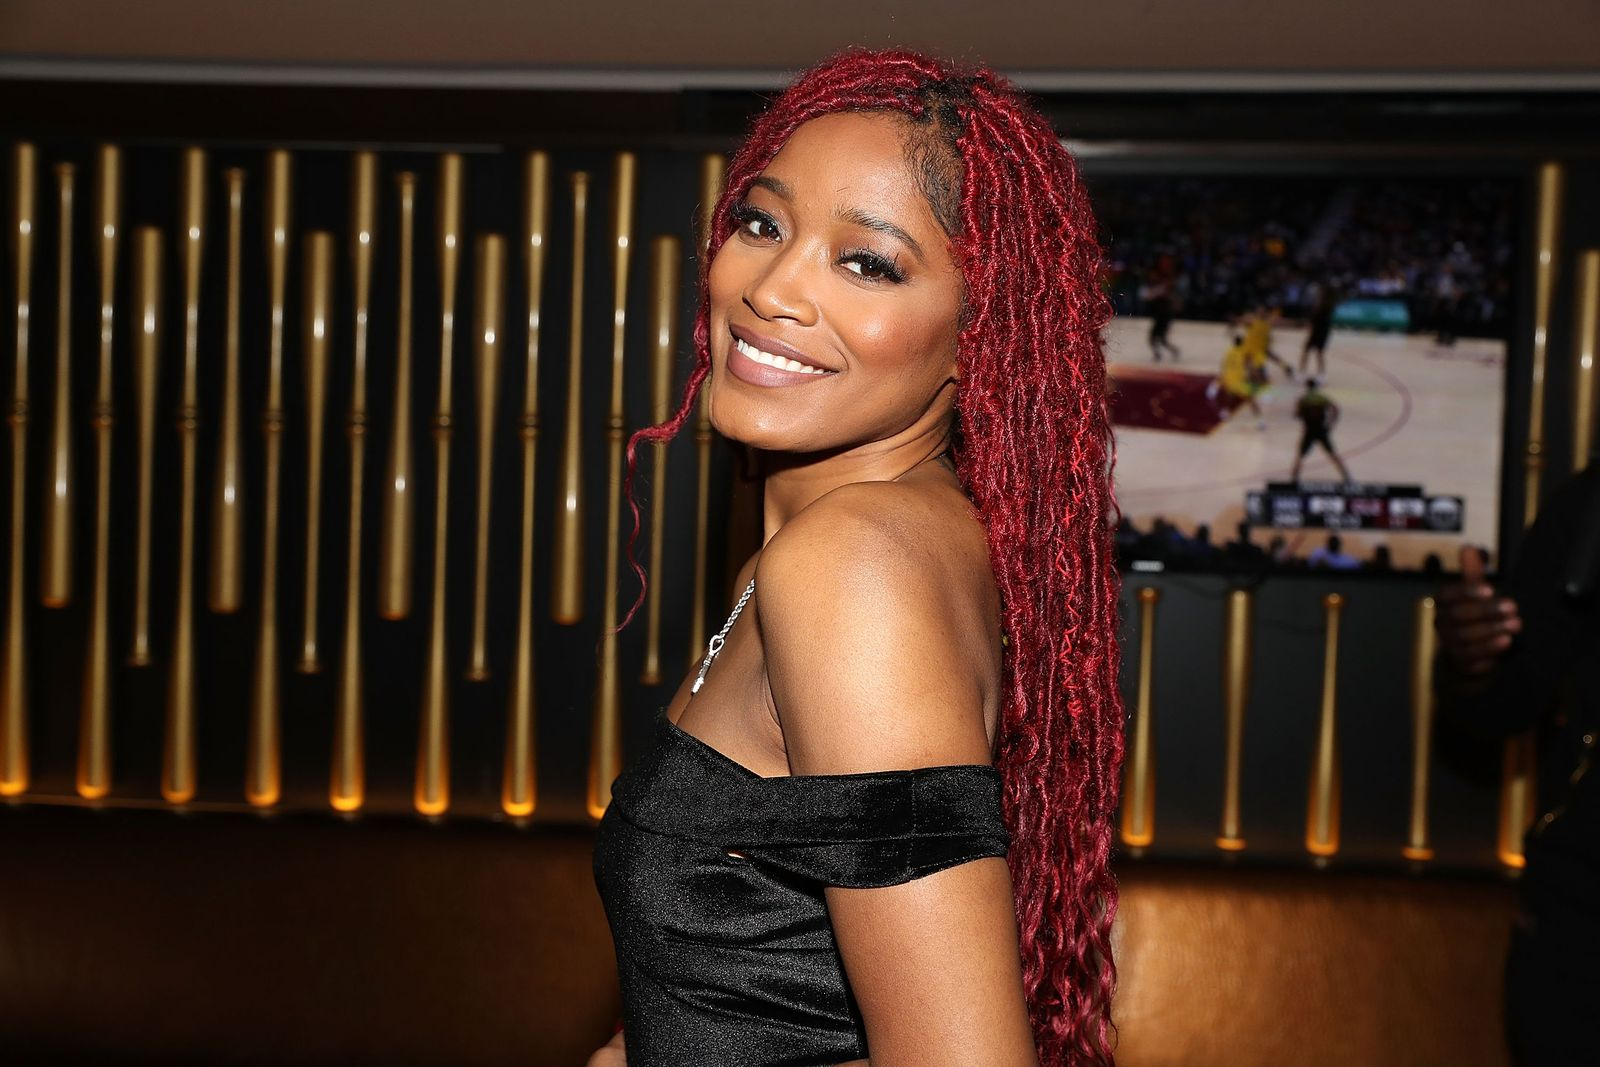 Keke Palmer attends her listening party at the 40/40 club in 2018 | Source: Getty Images/GlobalImagesUkraine